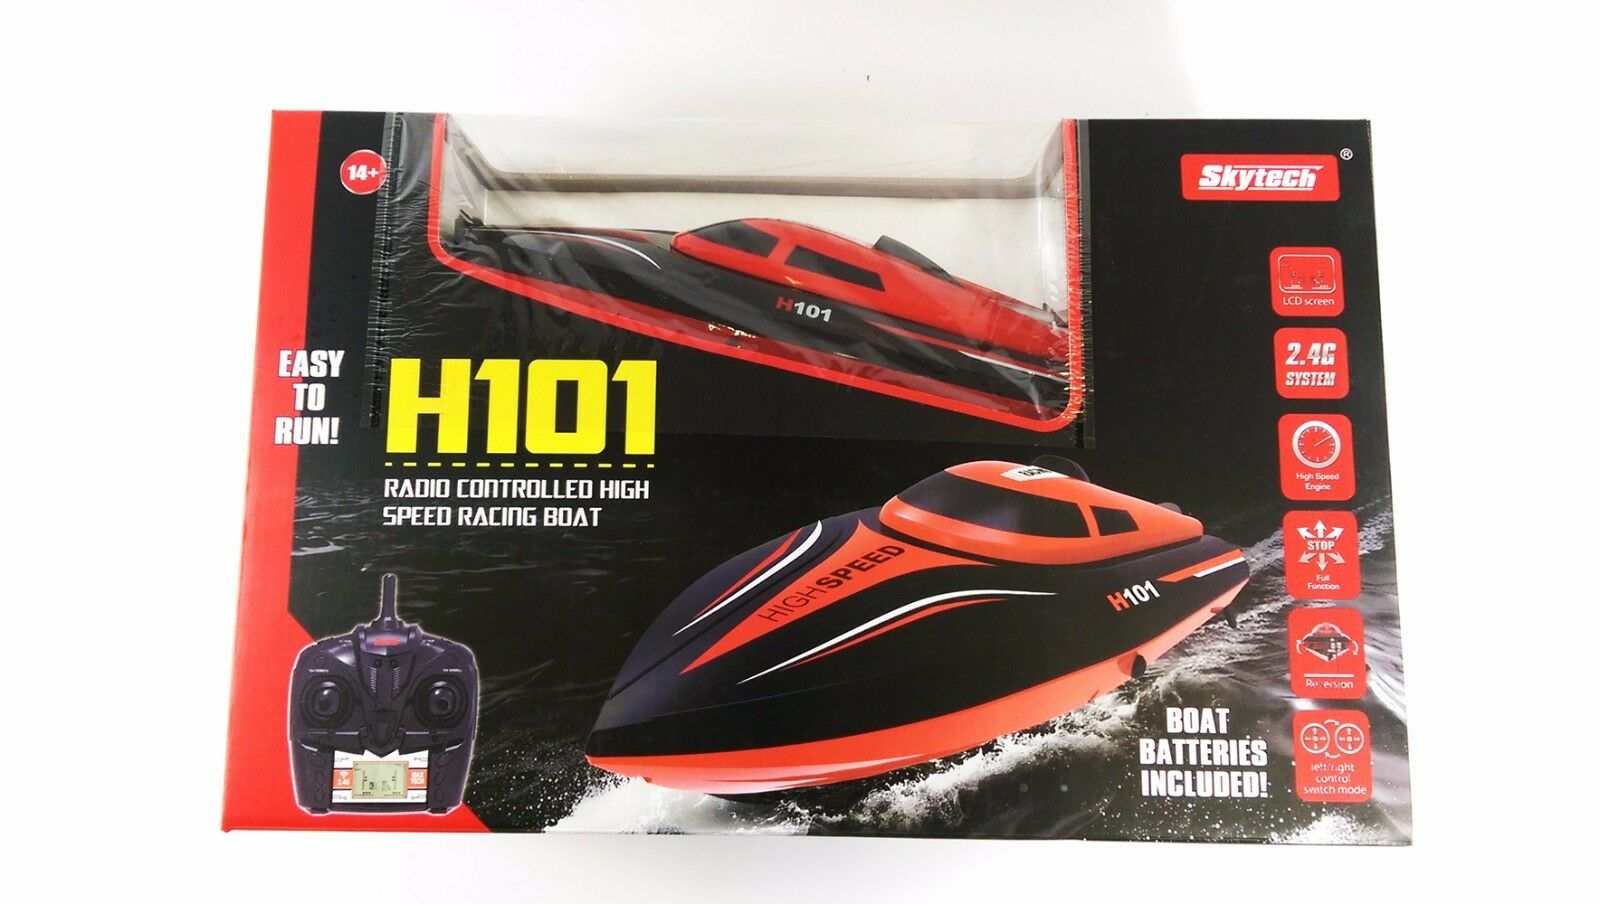 Skytech Babrit Tempo 1 2.4GHz HIGH SPEED RADIO CONTROL WATER COOLED RACING MODEL